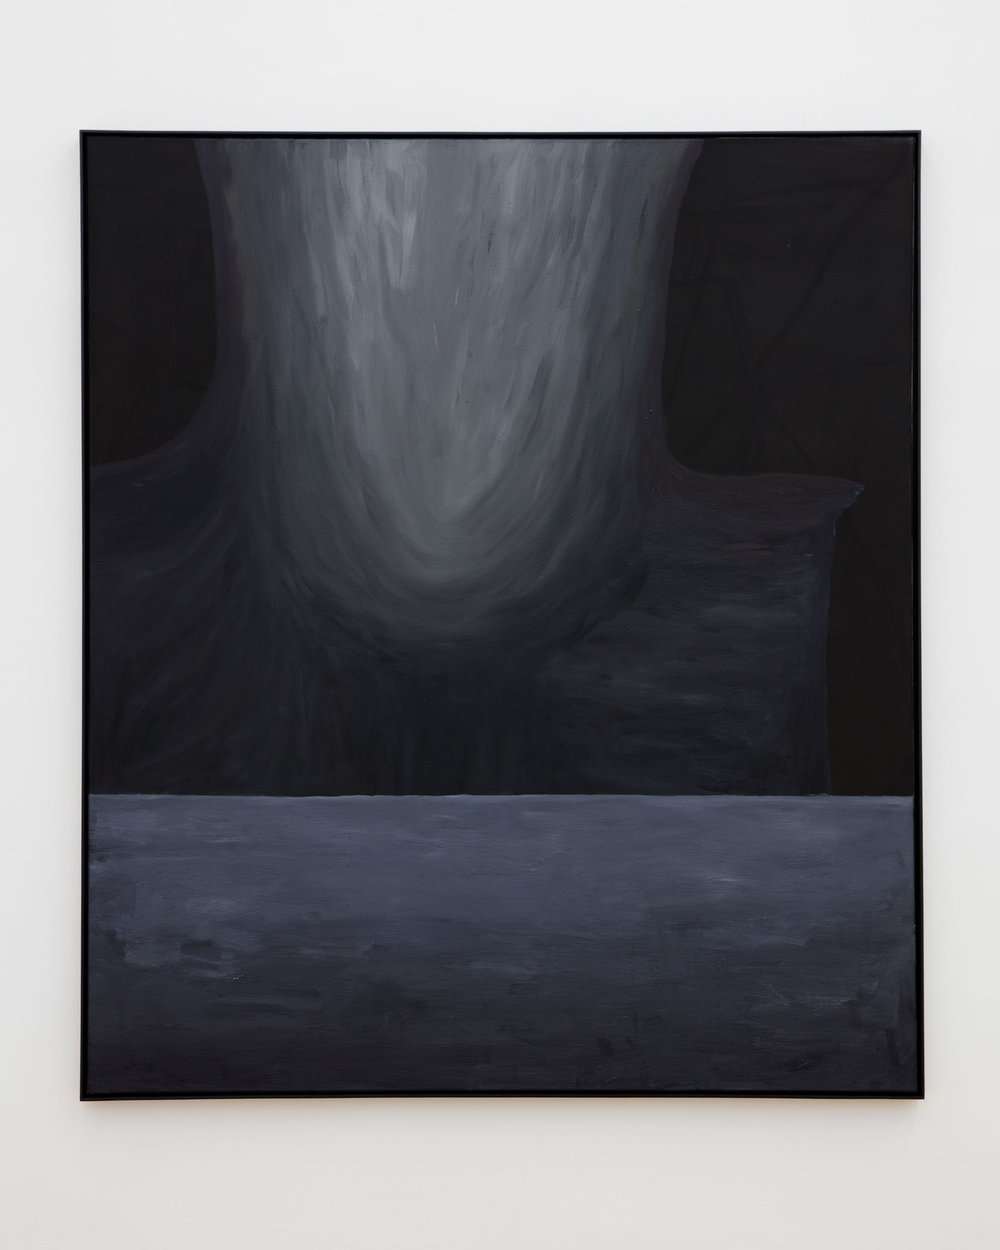 Veronika Hilger: Untitled, 2019, oil on canvas in artists frame, 150 x 130 cm